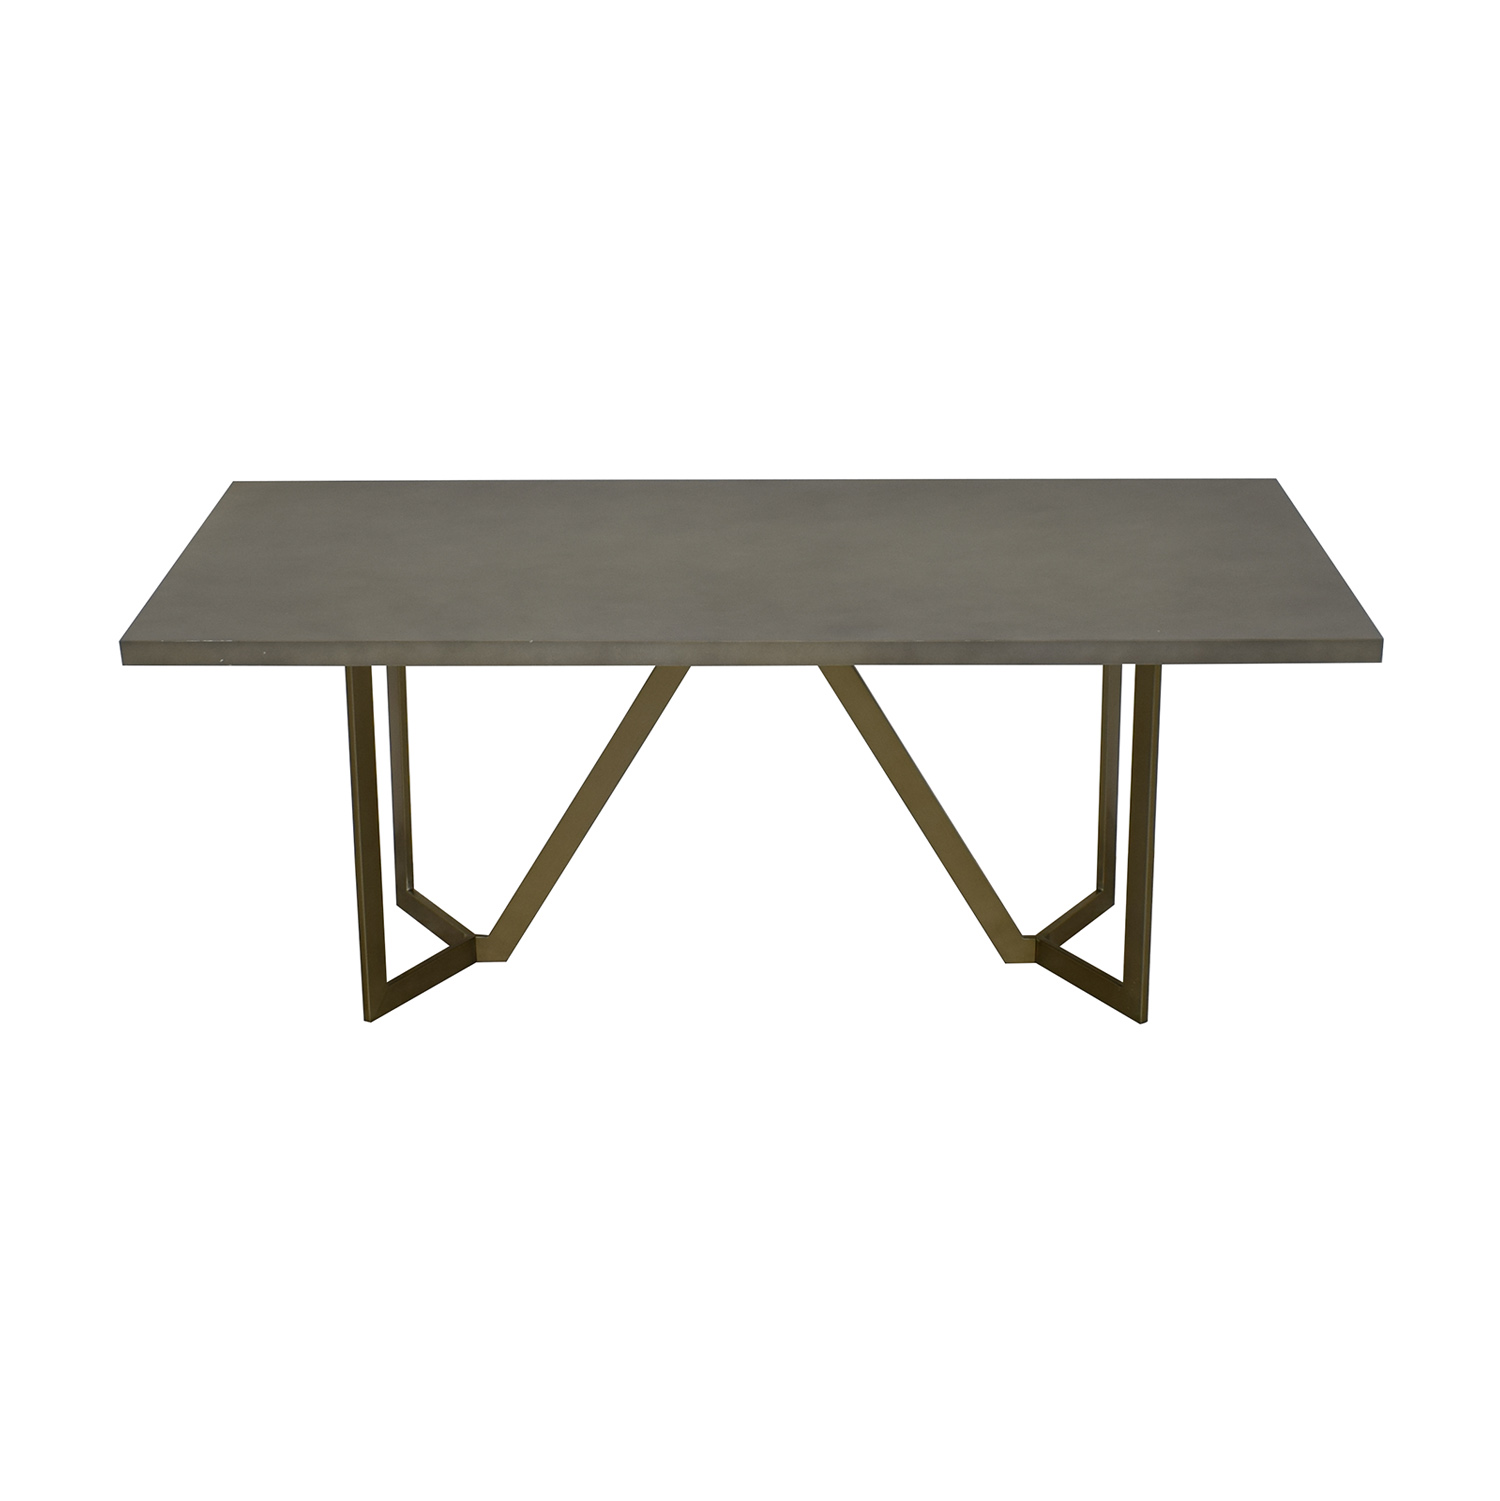 West Elm West Elm Tower Dining Table second hand